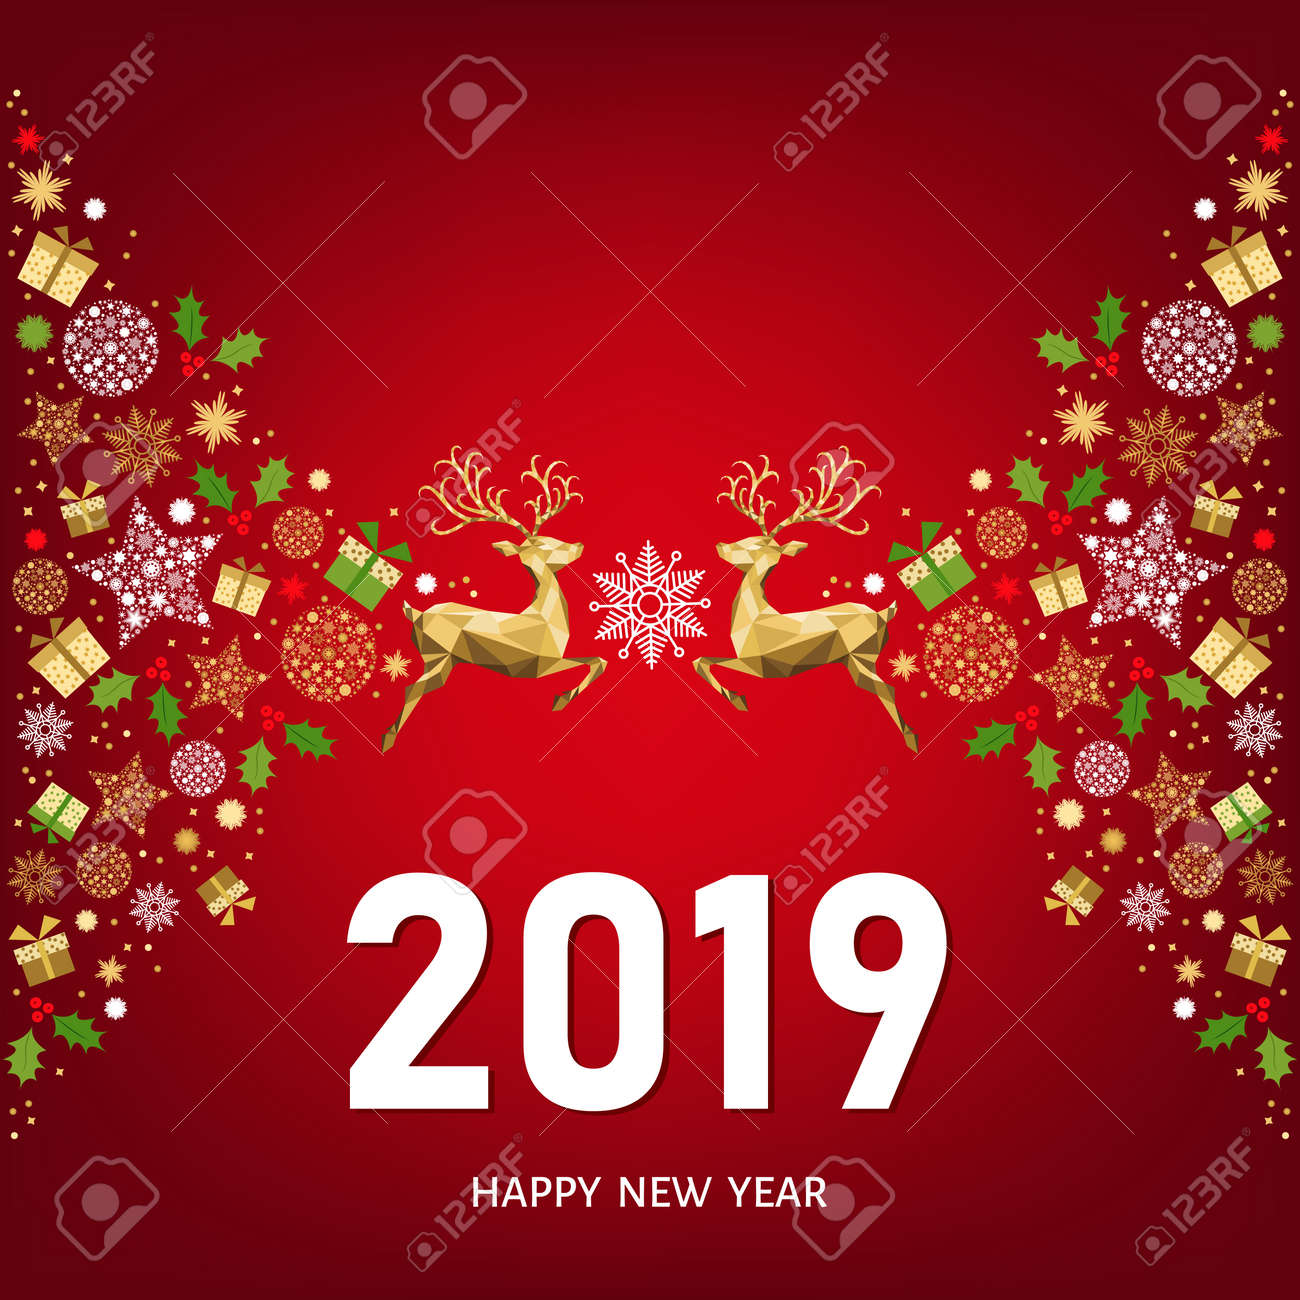 2019 happy new year greeting card on red background with golden christmas pattern with xmas deer